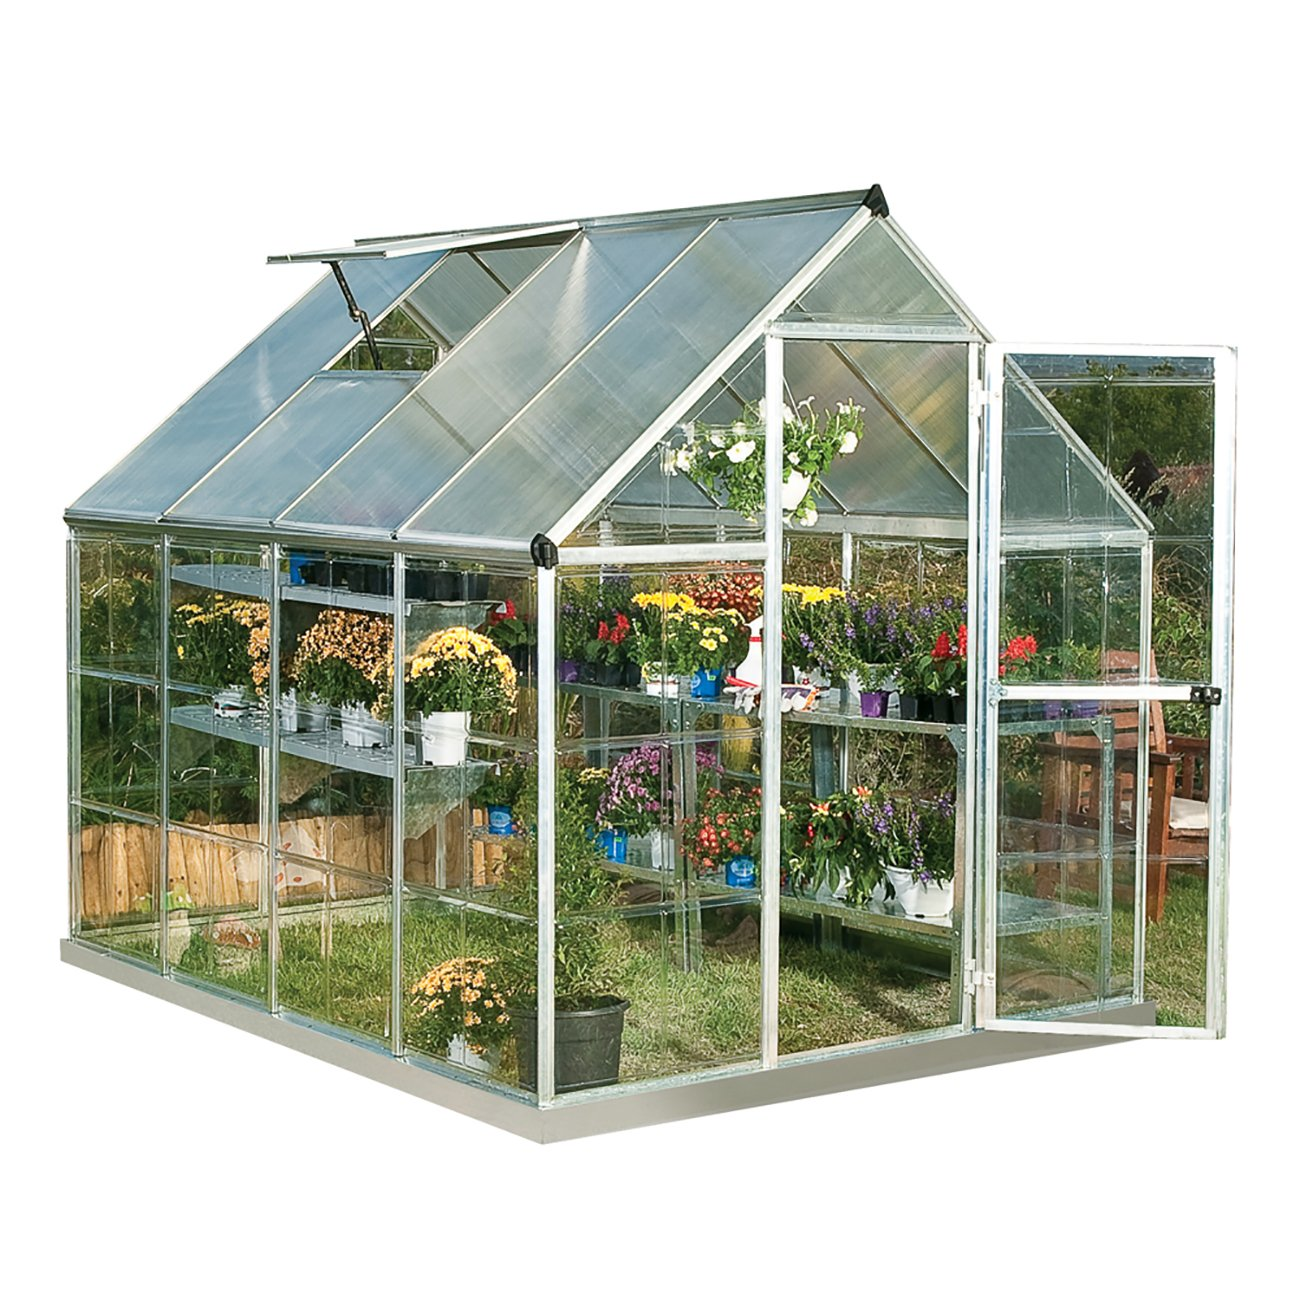 Palram Hybrid Greenhouse - 6' x 8' - Silver, Plant Hangers Included by Palram